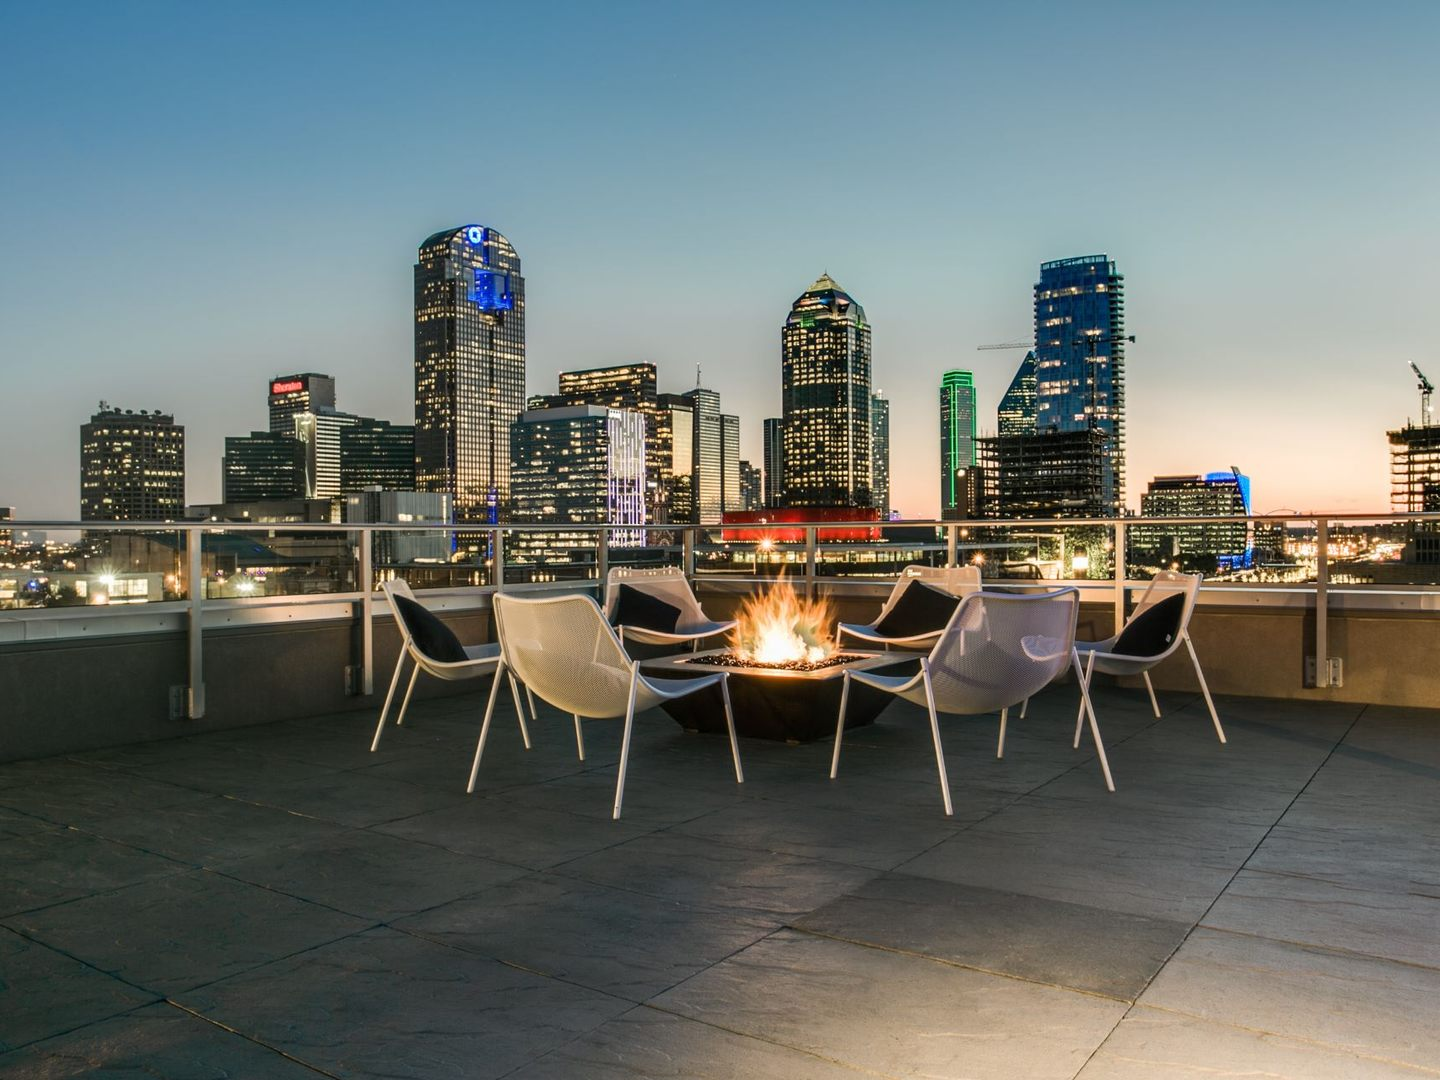 Rooftop patio fire pit with seating and views